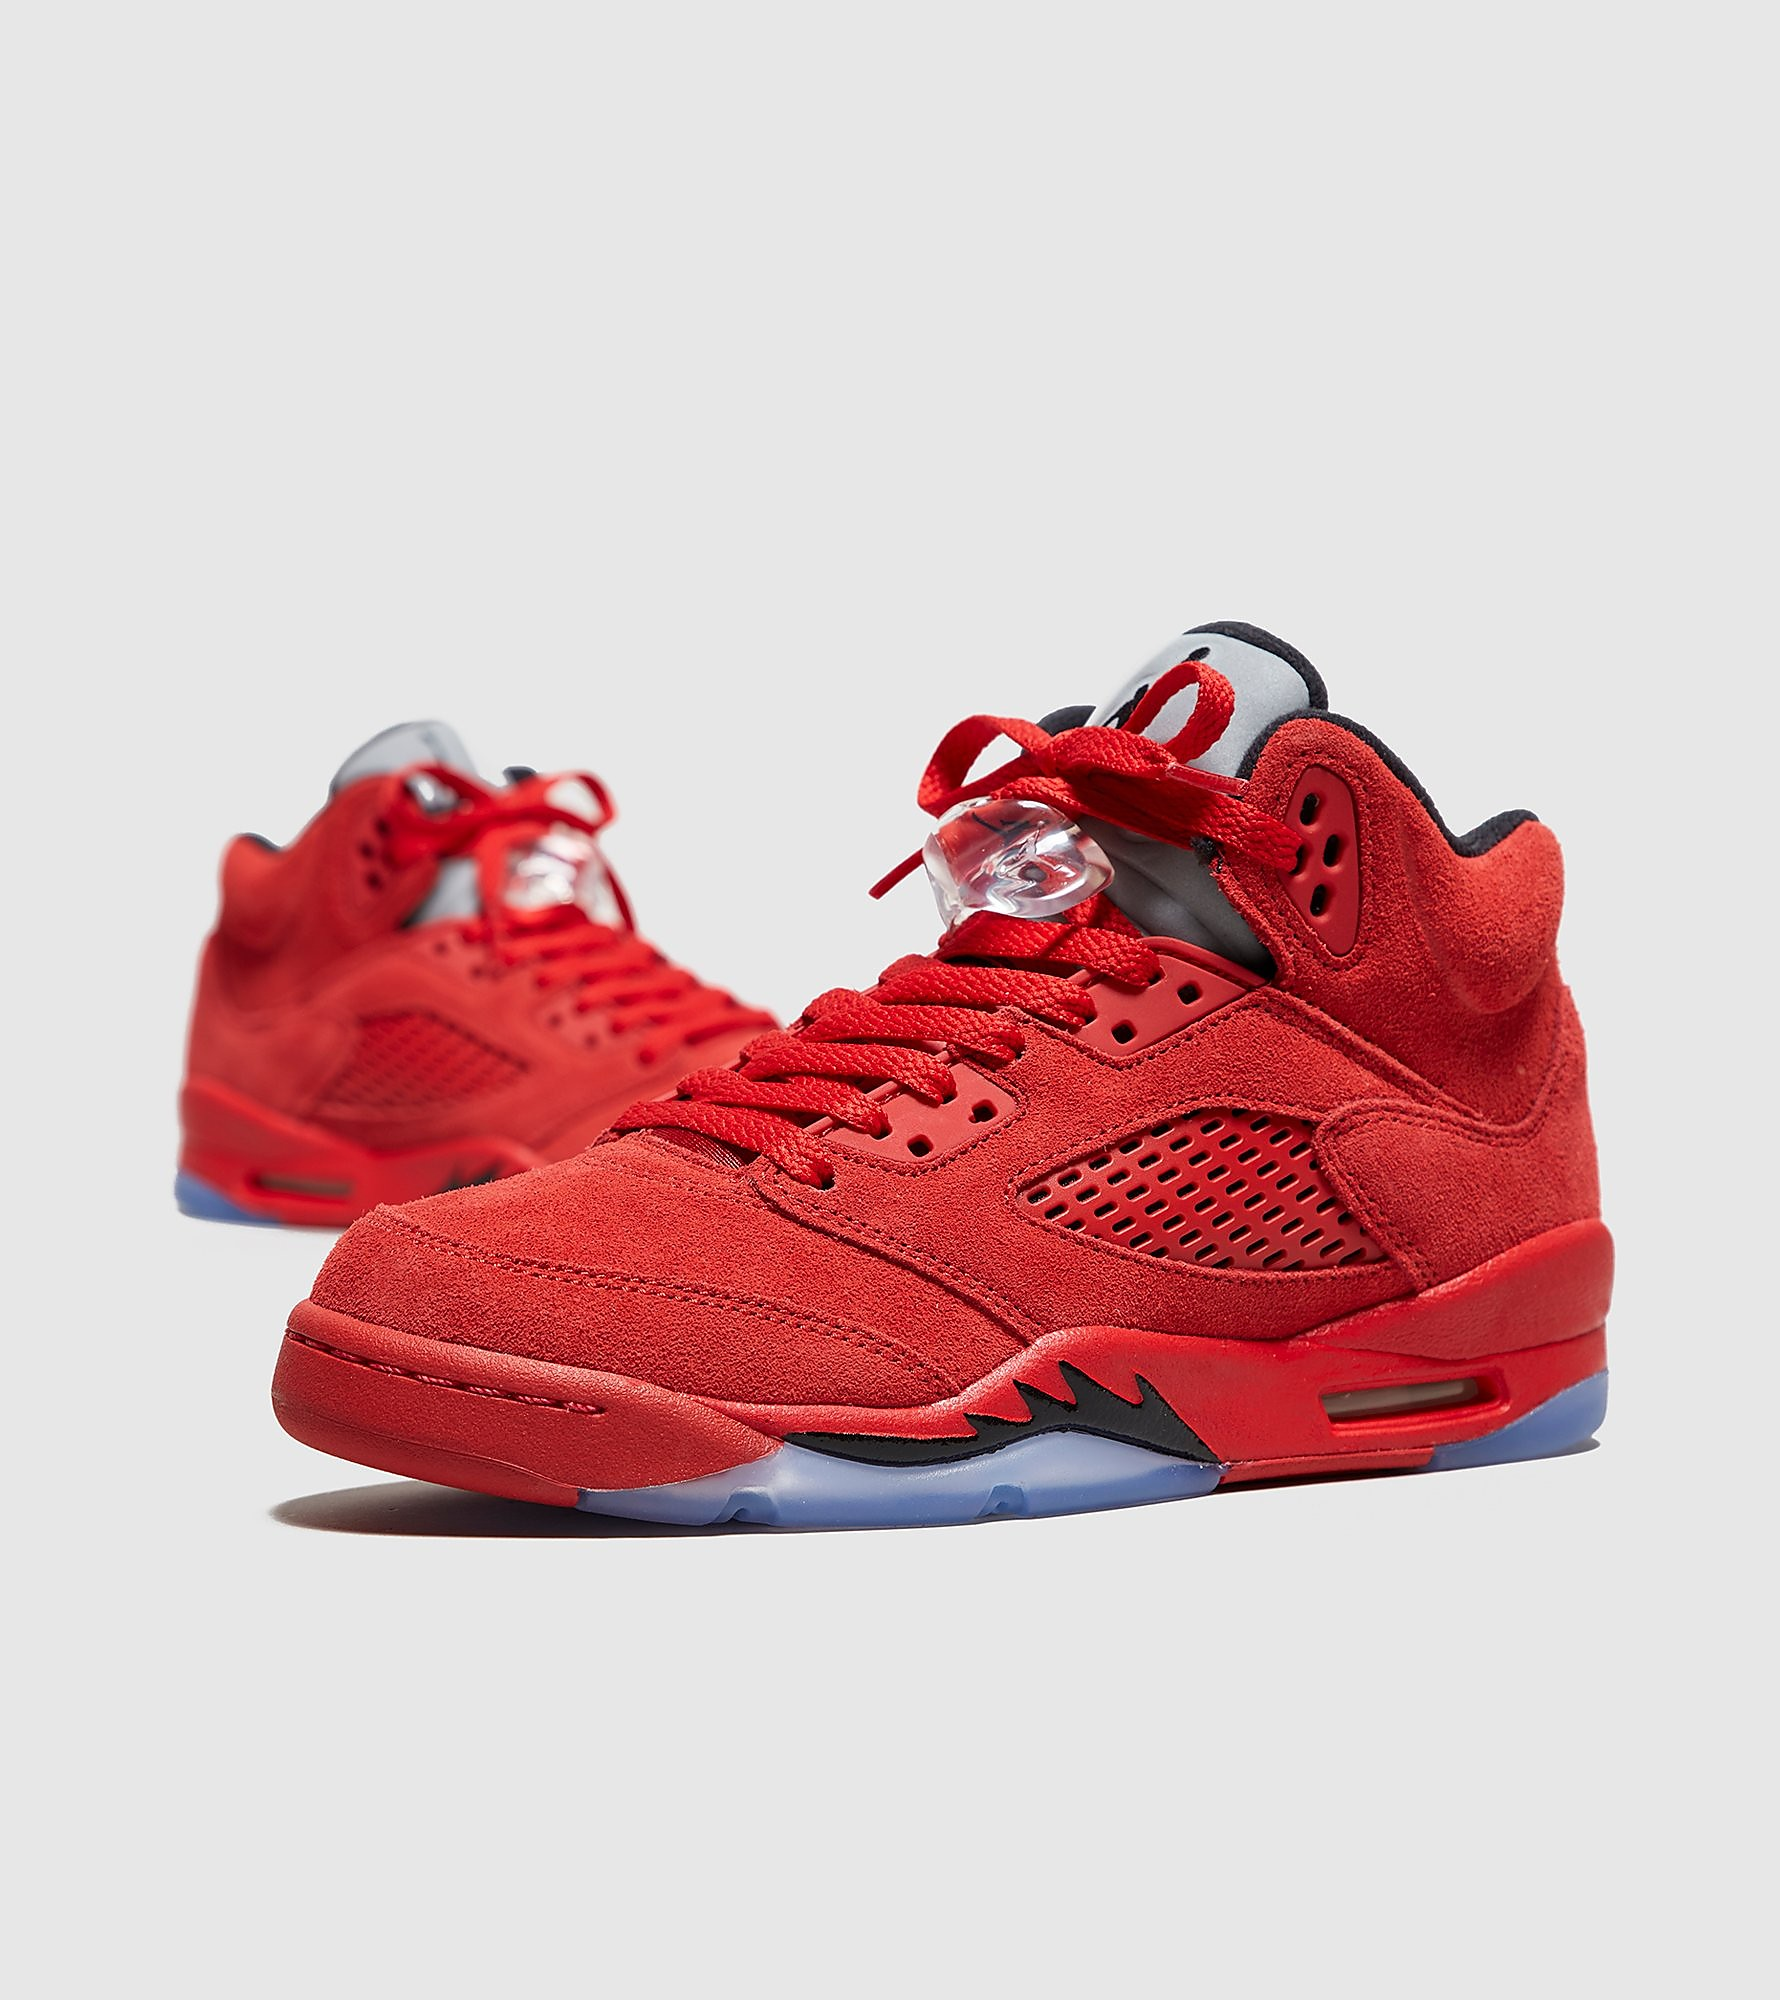 Jordan 5 Retro Junior